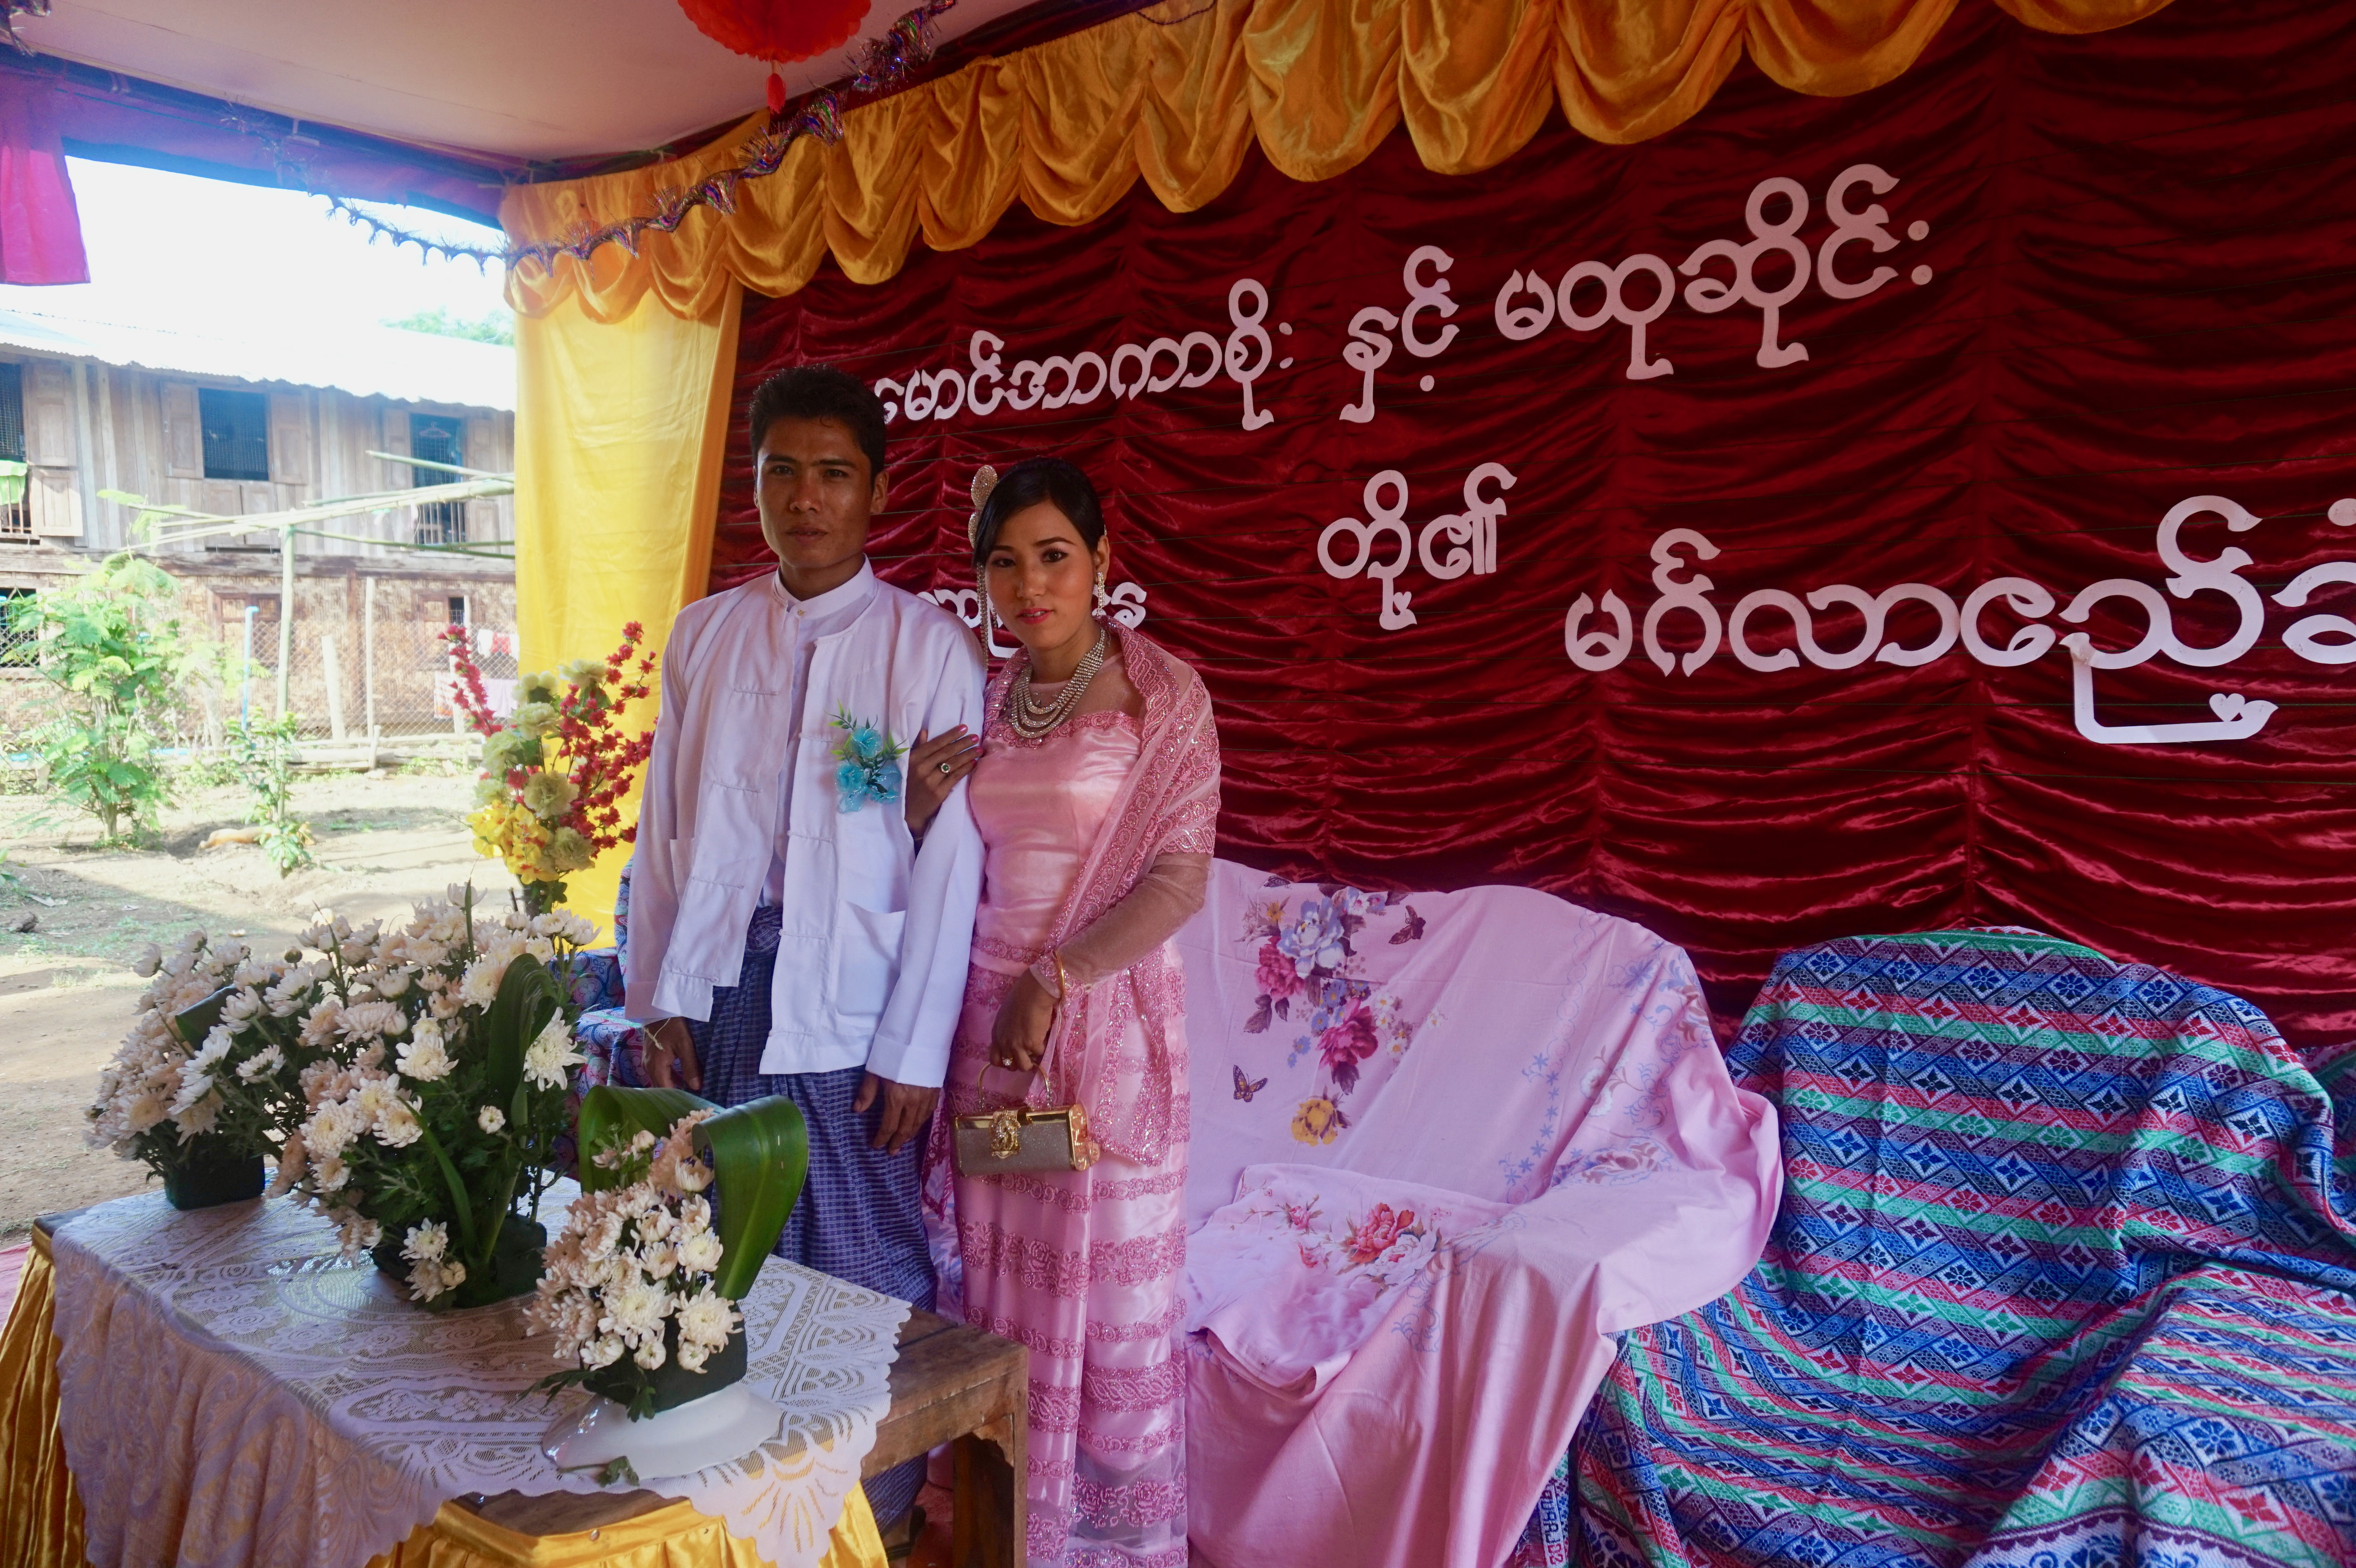 Burmese wedding party